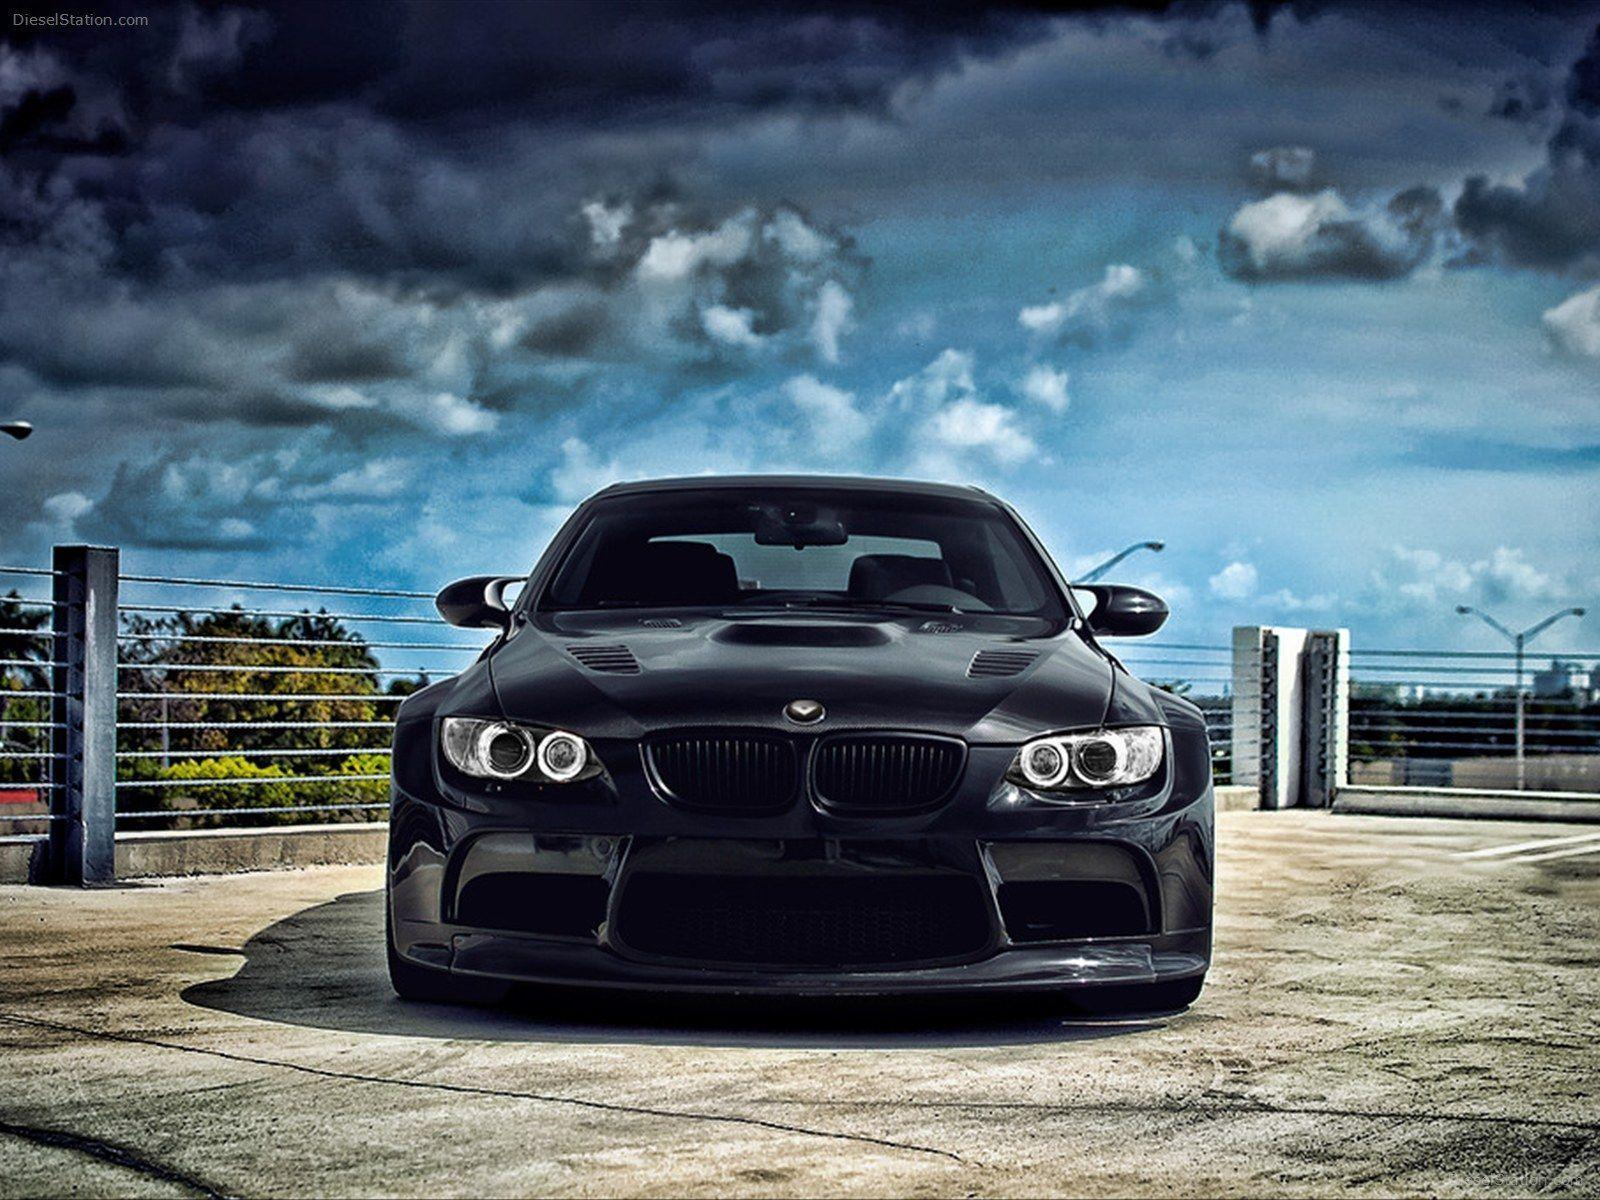 BMW M3 Wallpapers 5 Backgrounds